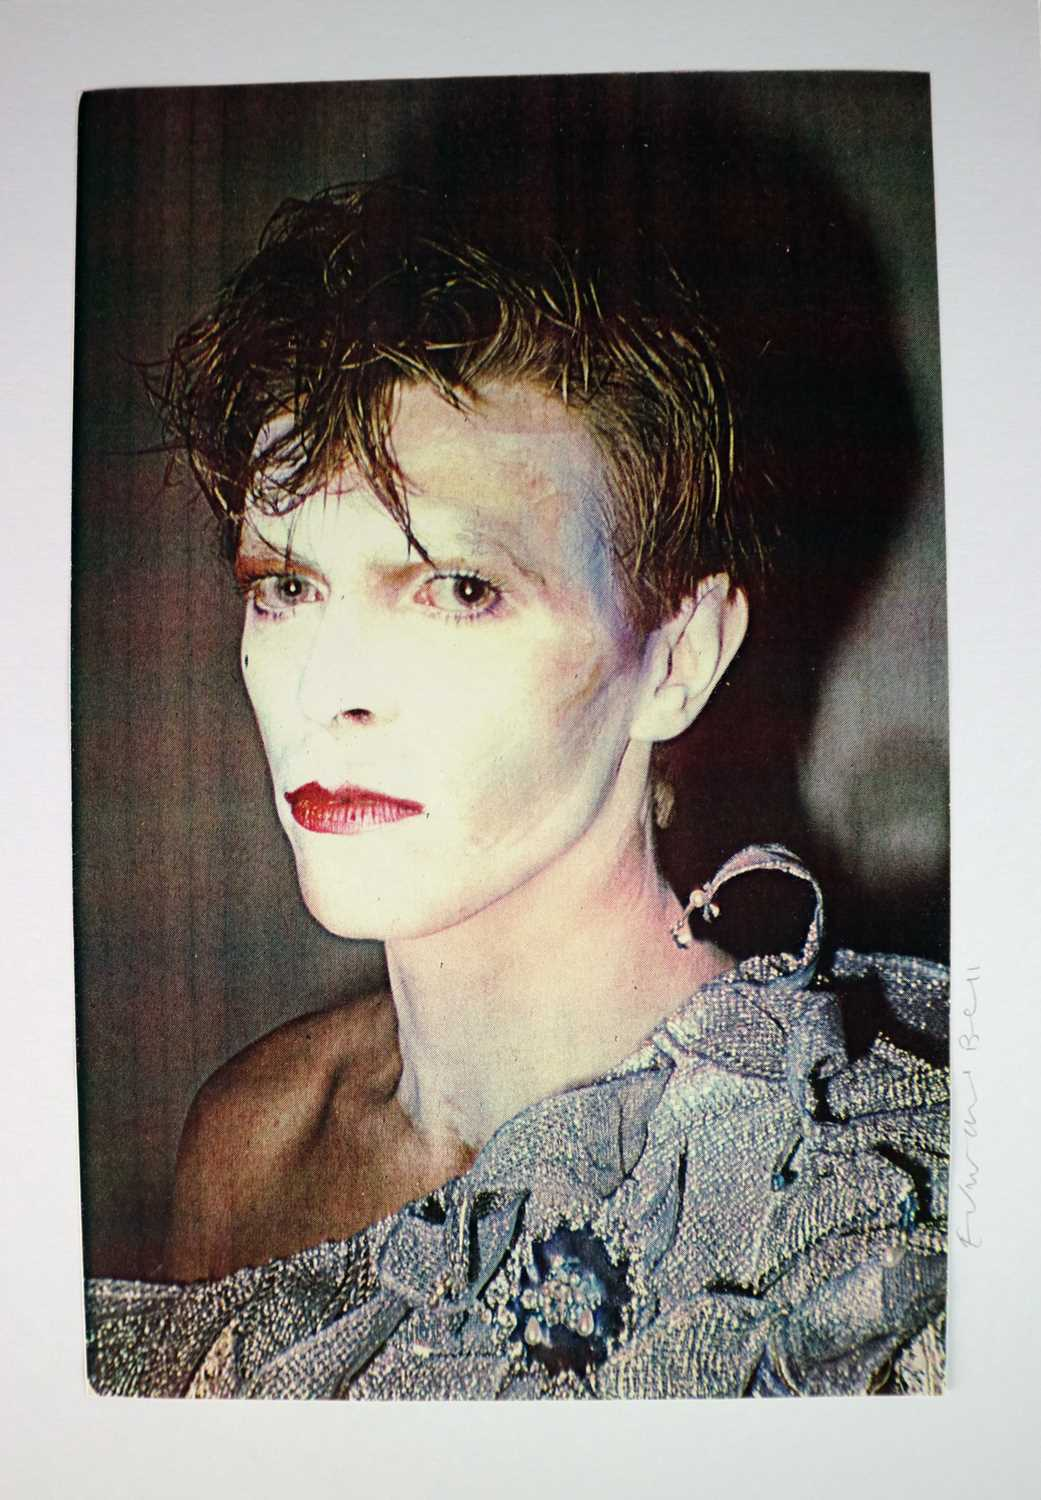 Edward Bell (British Contemporary) Colour Print Bowie in Scary Monsters Makeup - Image 5 of 6